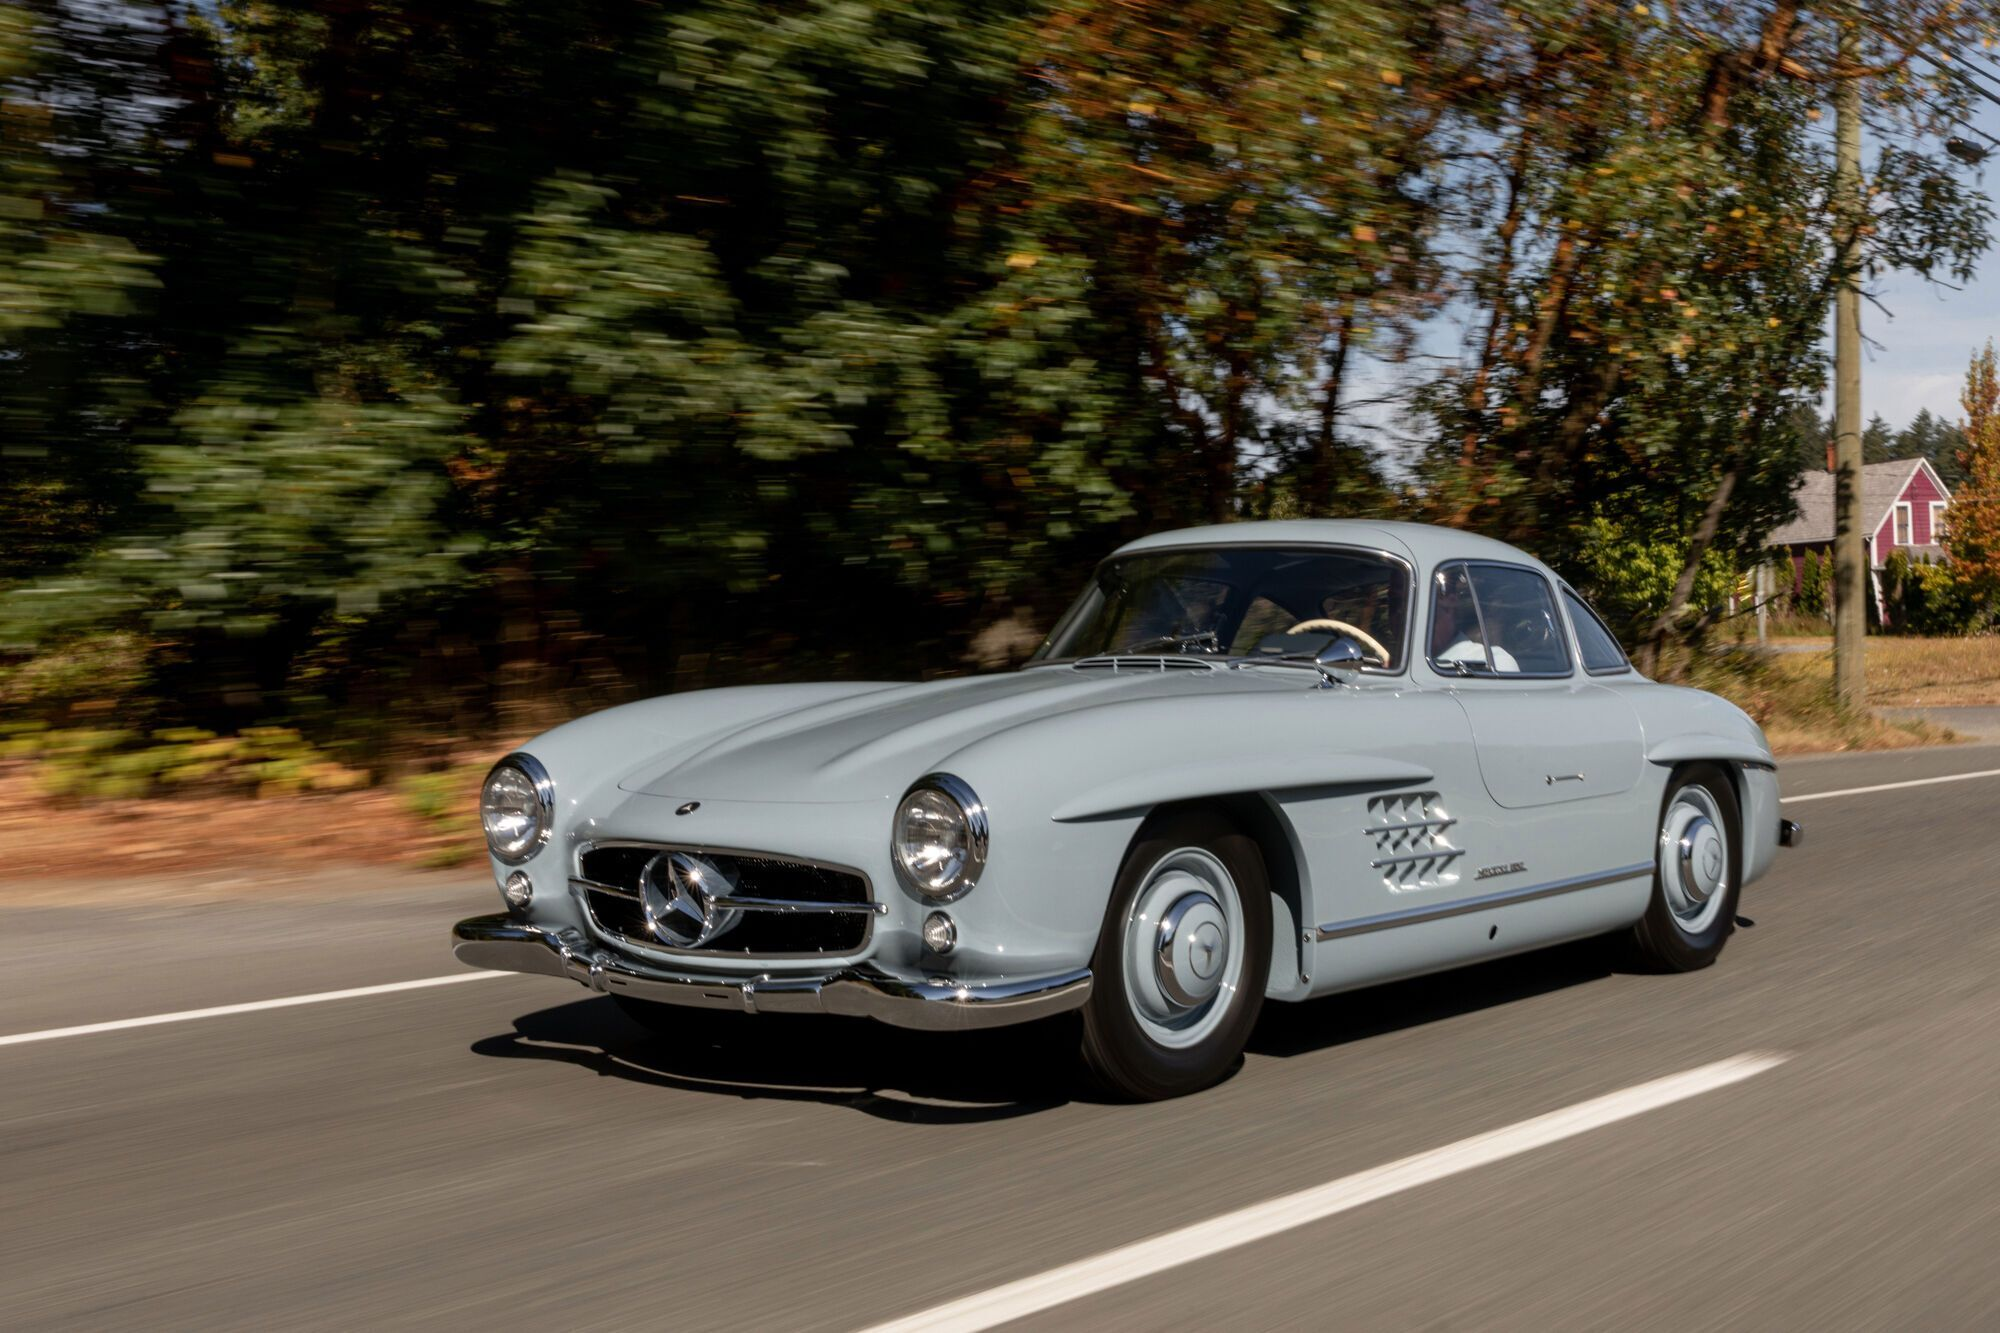 1957 Mercedes-Benz 300 SL. Фото: